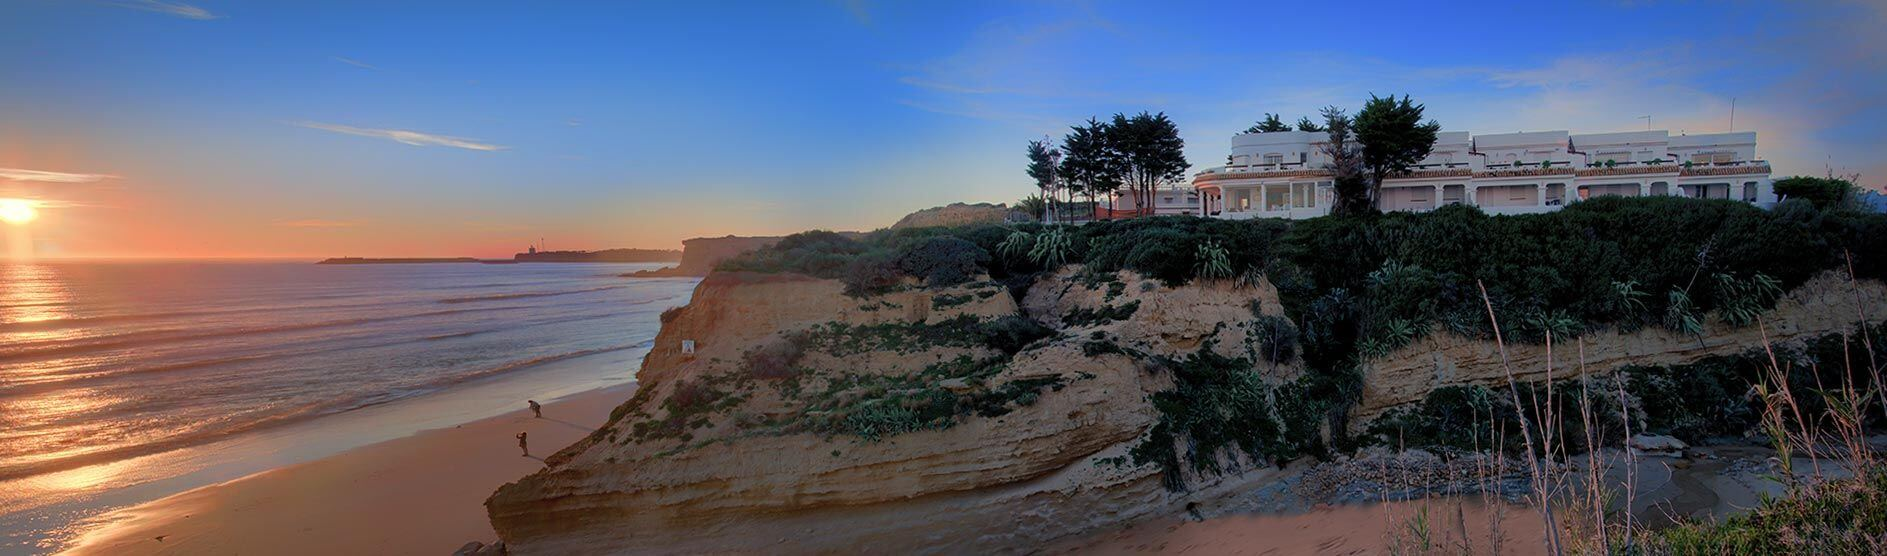 View of the cliff and the sea with the lighthouse of Conil in the background - Accommodation Flamenco Villas in Conil